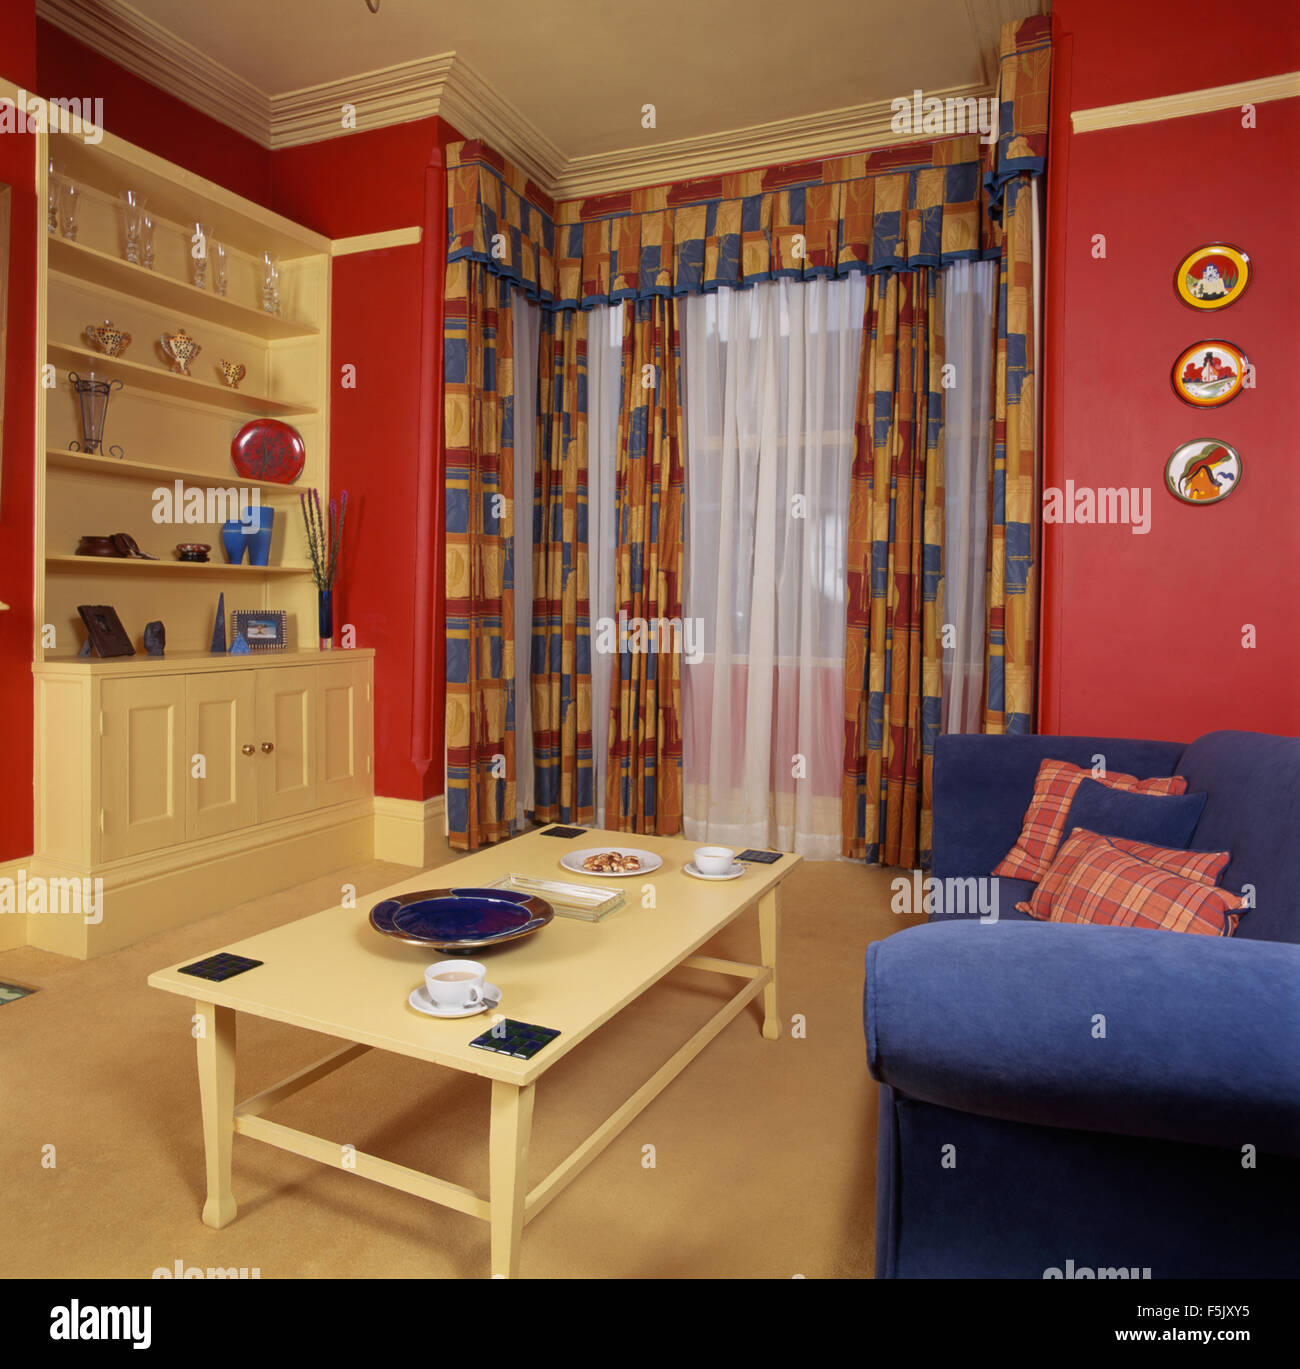 Red patterned curtains living room - Patterned Curtains With Voile Drapes In A Red Economy Style Nineties Living Room With A Blue